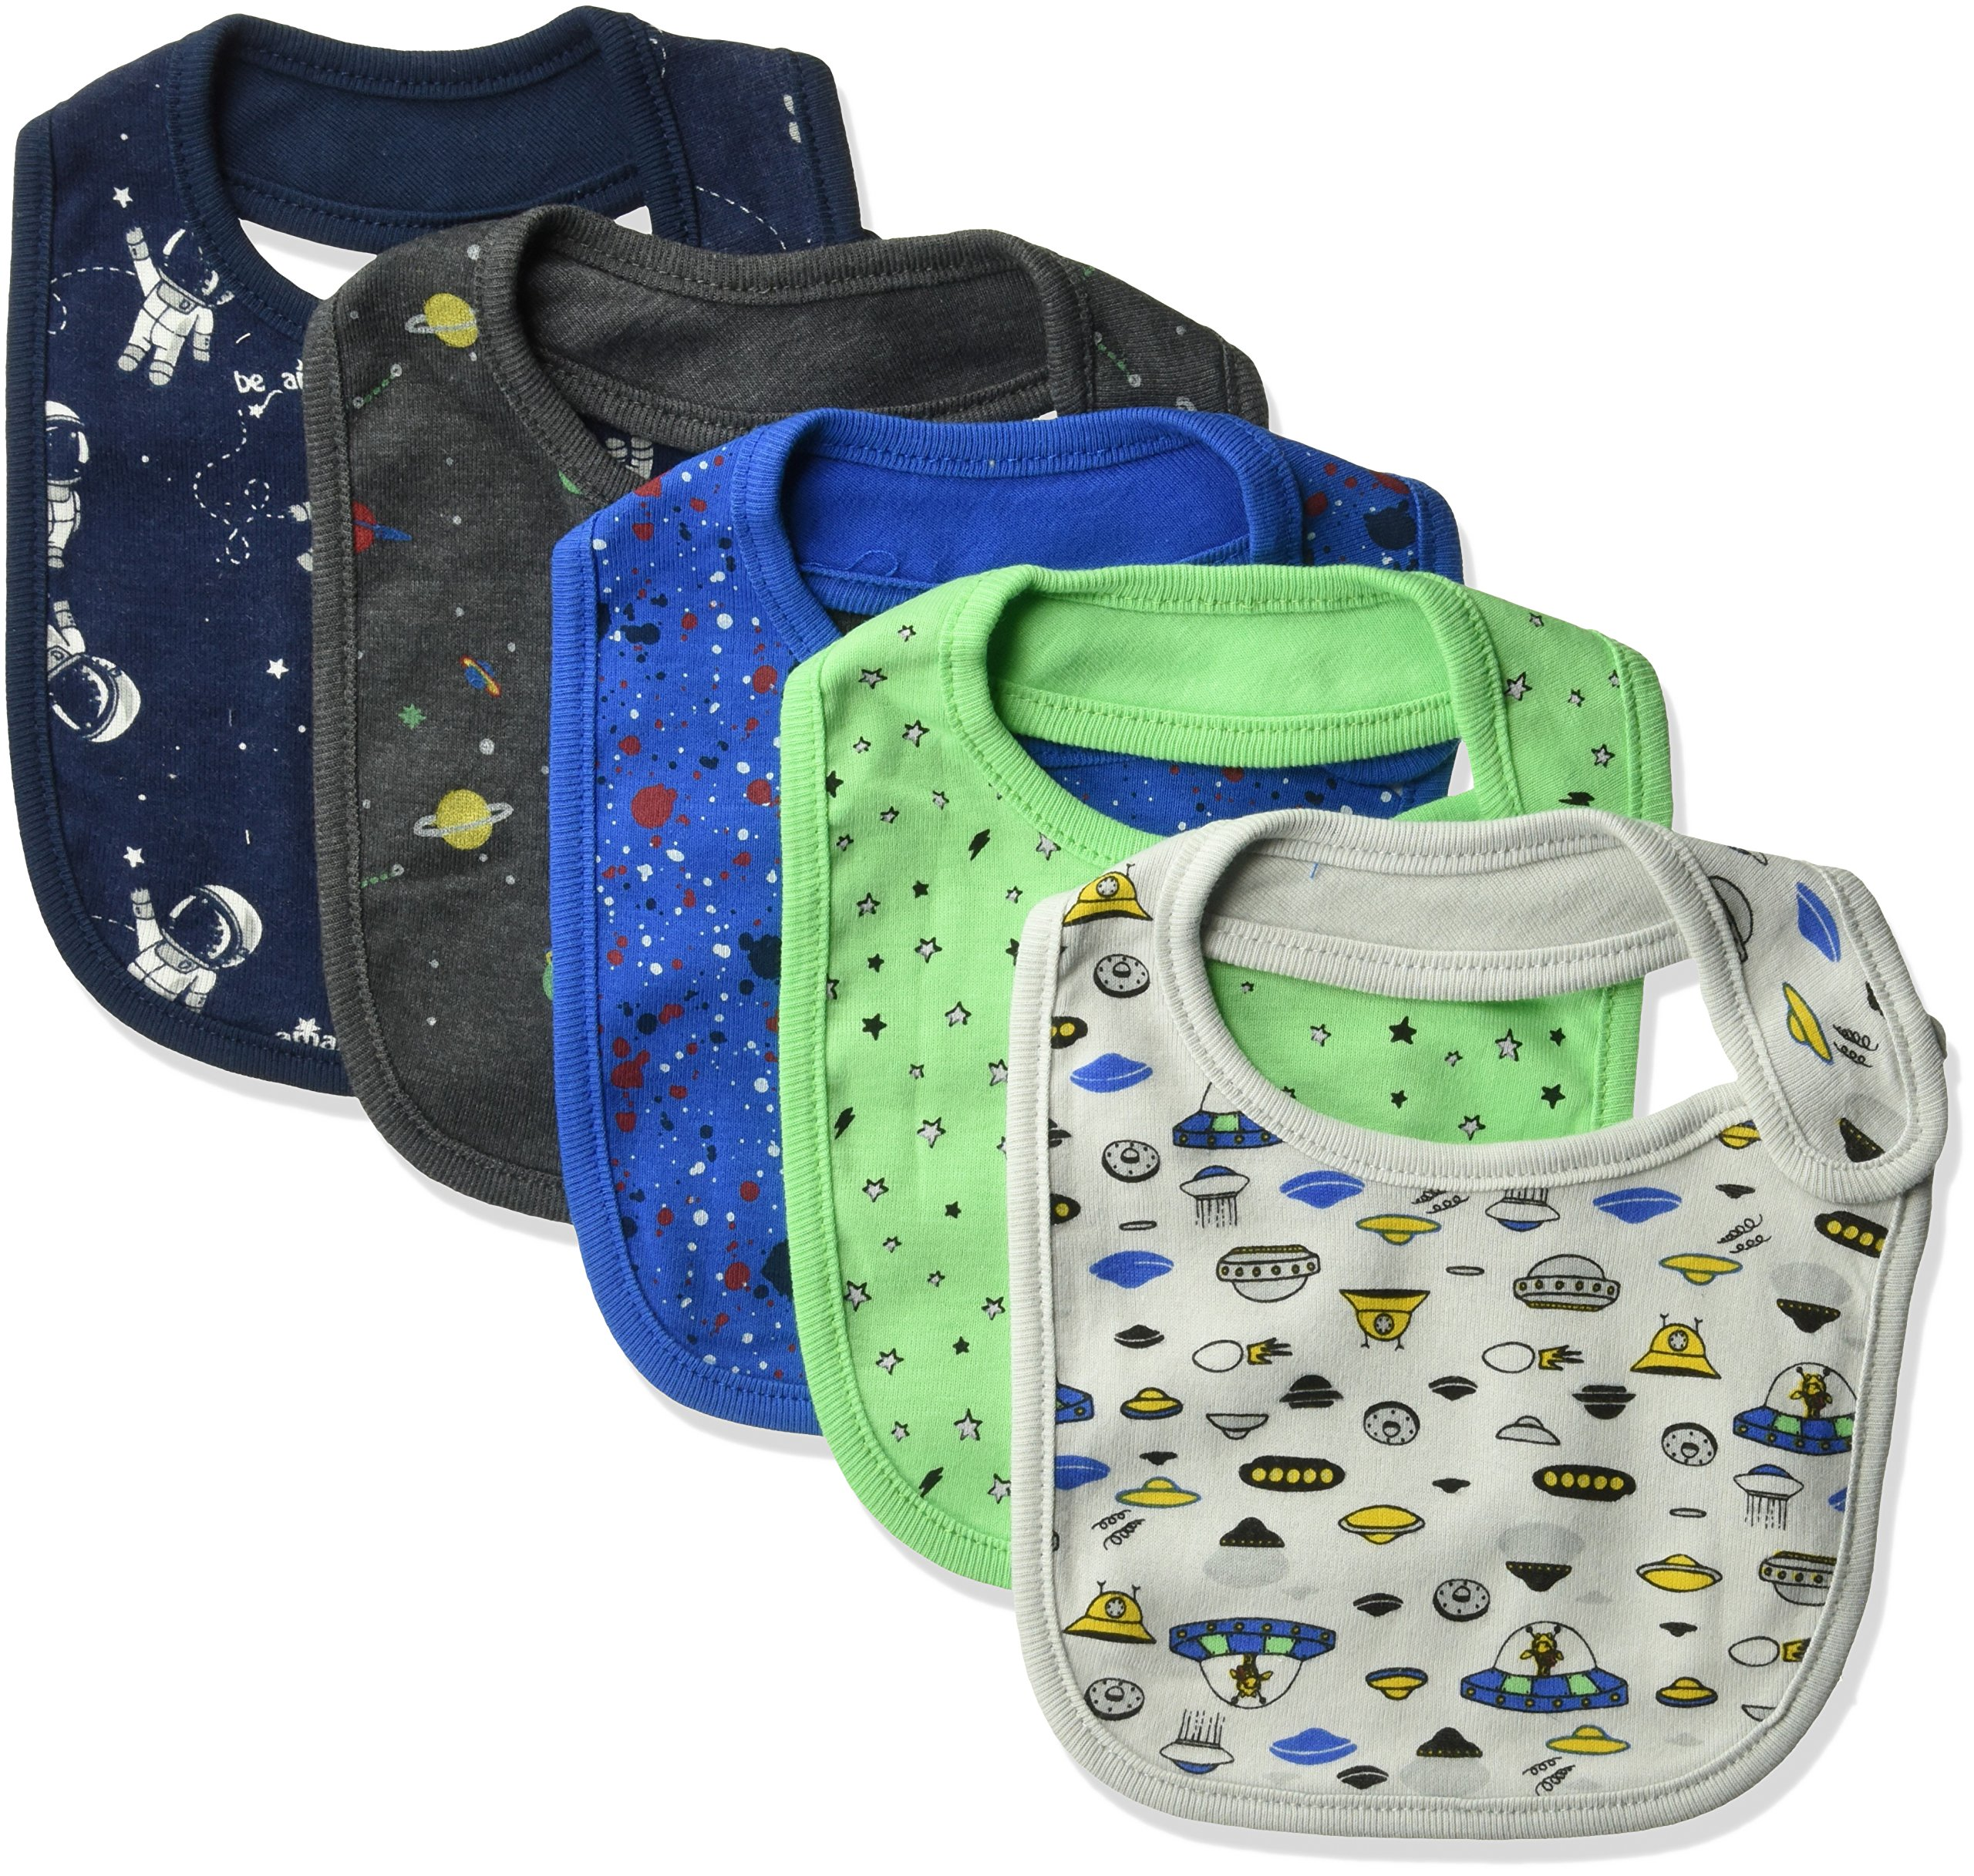 Rosie Pope Baby Boys Bibs 5 Pack, Space Theme, One Size